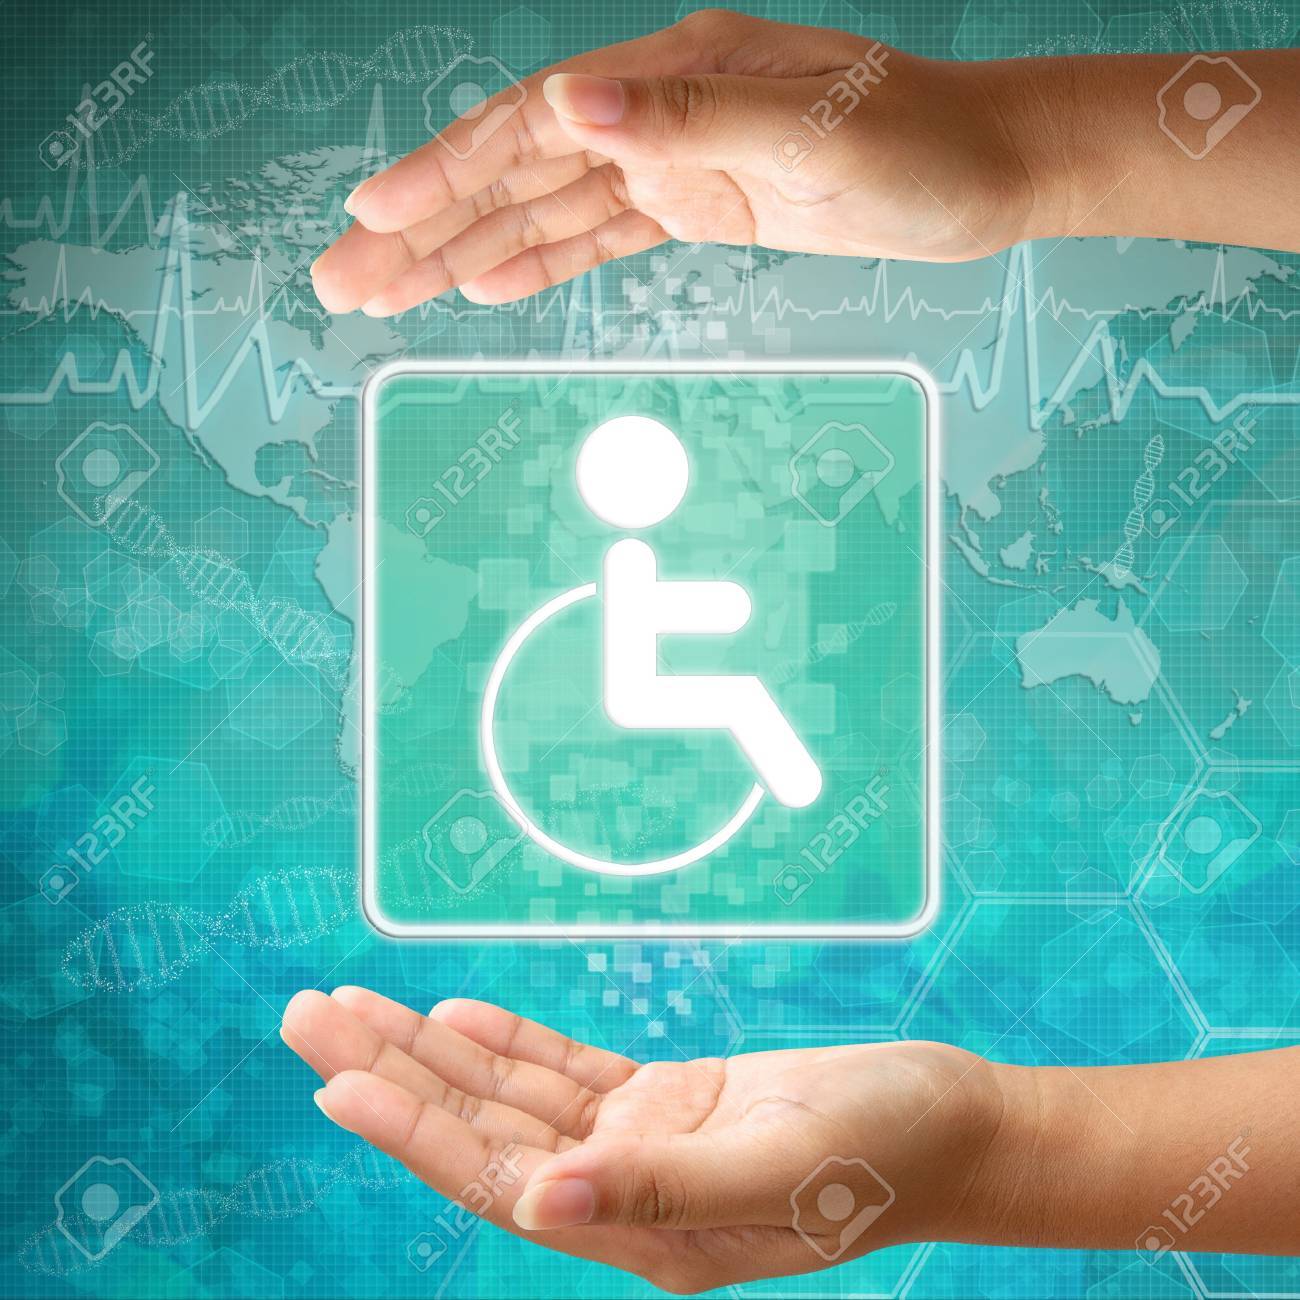 Medical icon Disabled in hand Stock Photo - 18122178